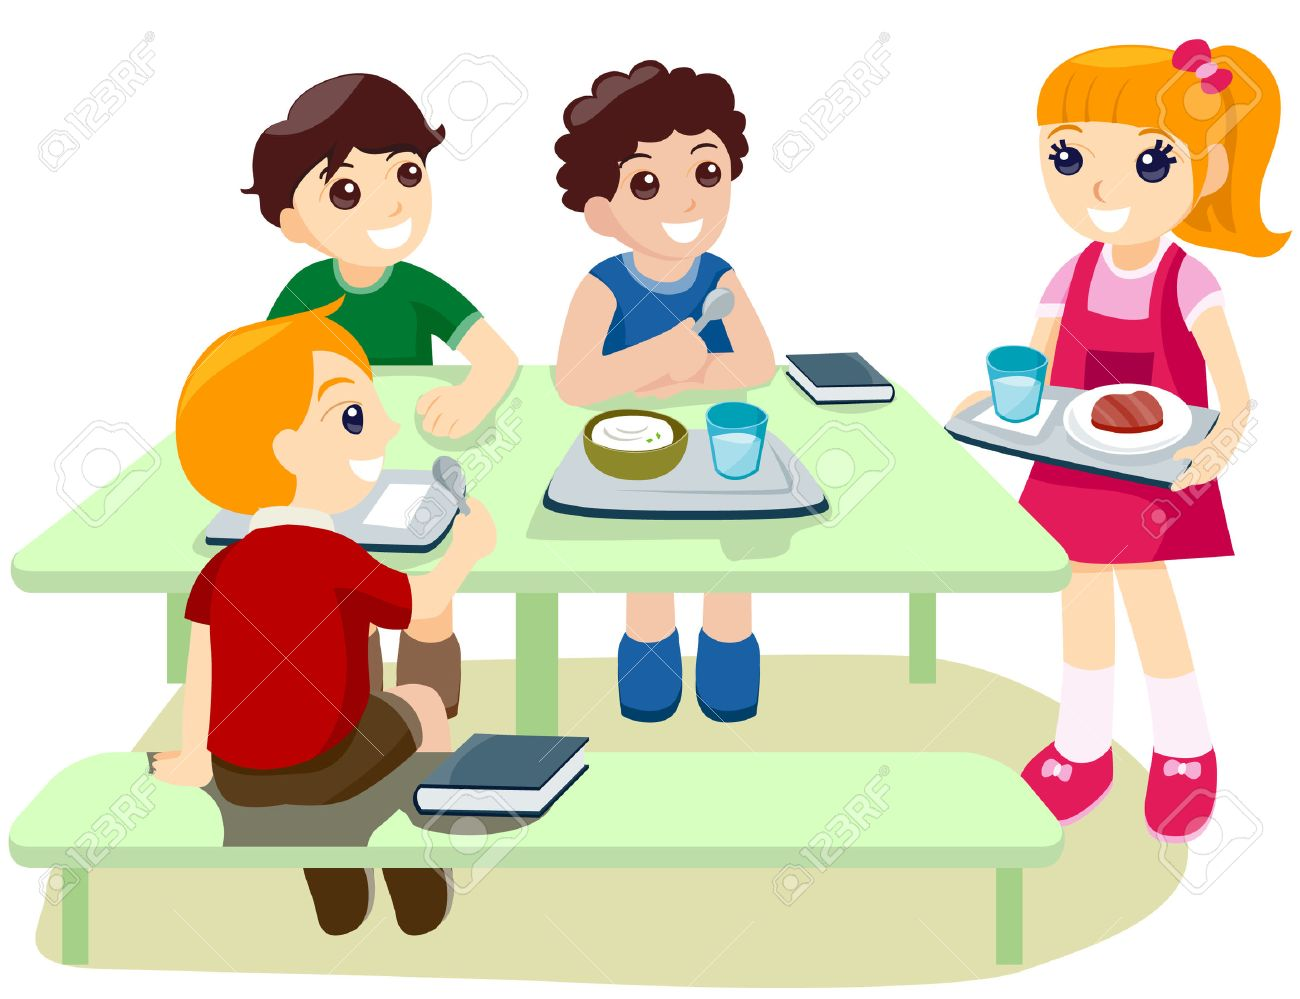 kids during lunch/break time with clipping path royalty free